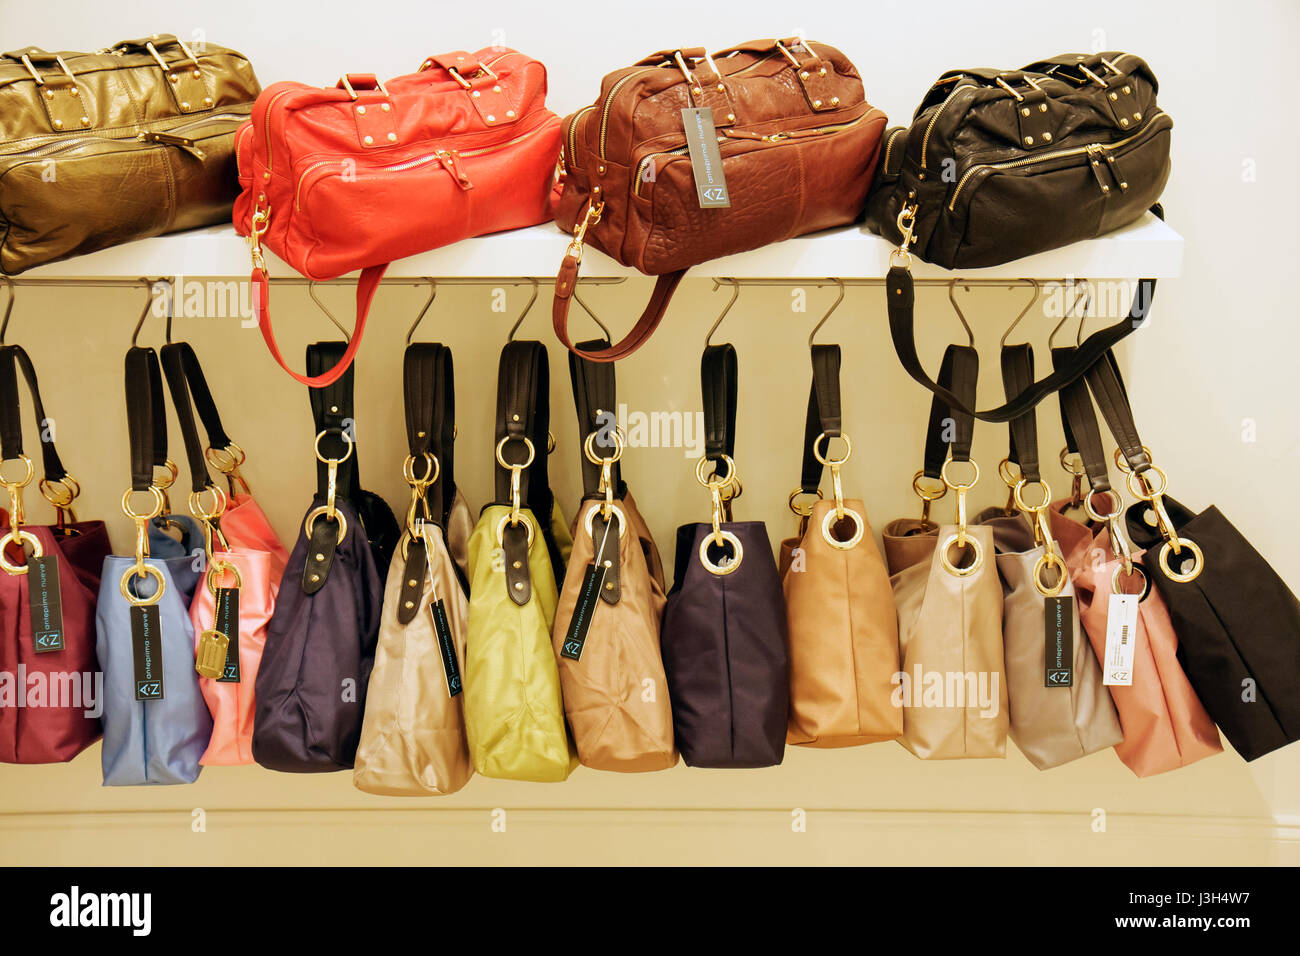 Miami Beach Florida Washington Avenue shop boutique designer handbags  display store purses retail tote bags leather canvas col e984911519e4f